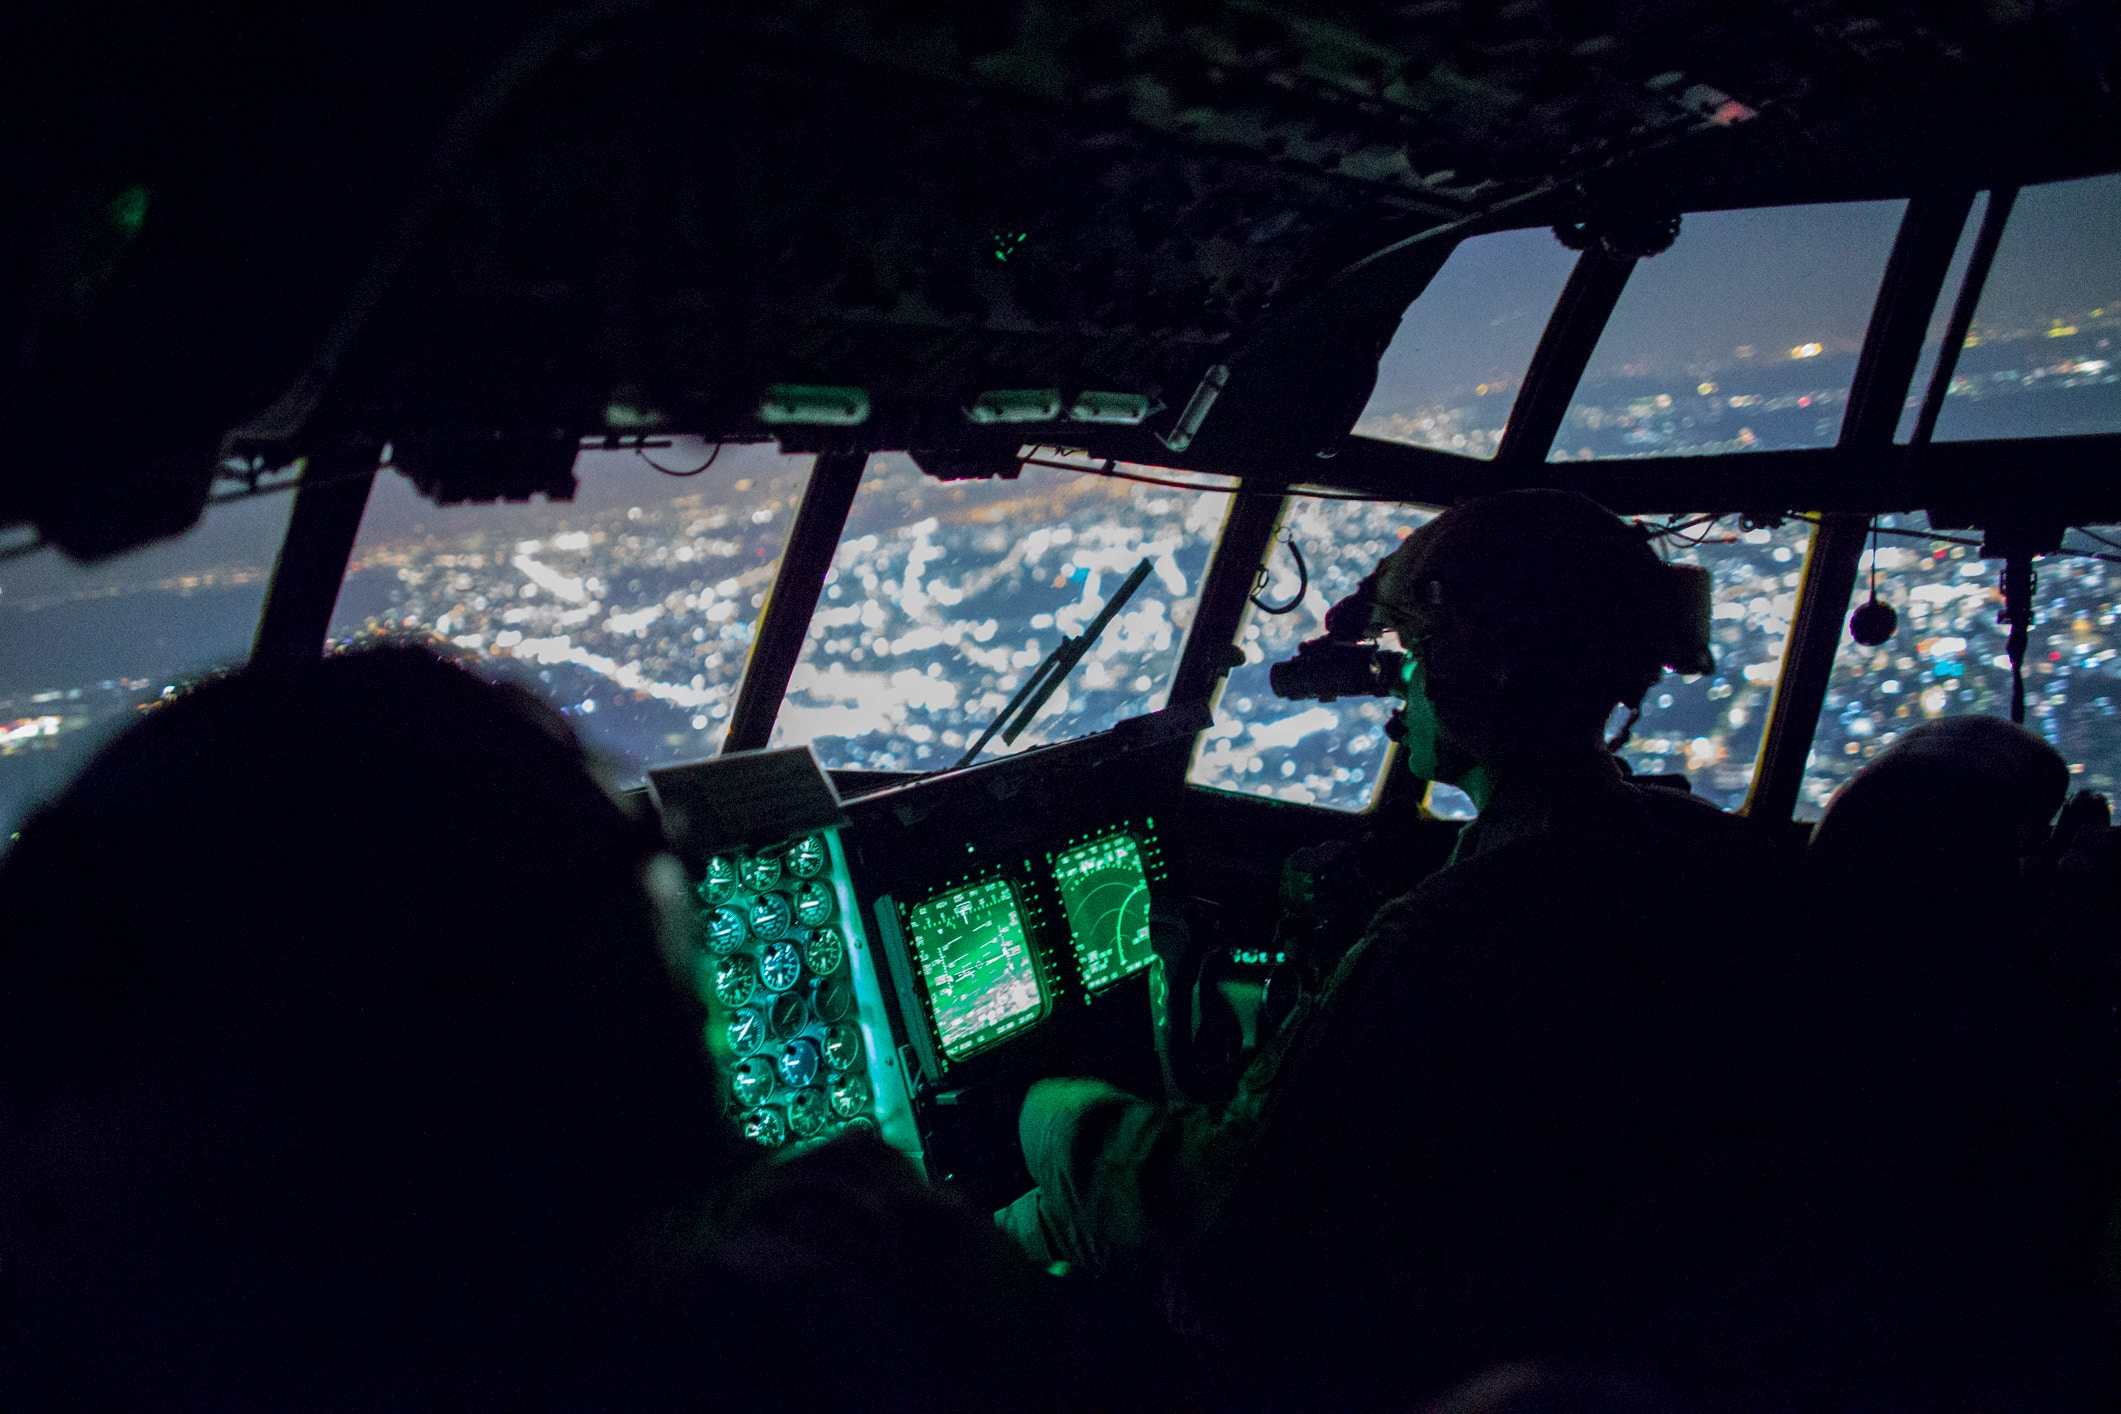 U.S. Air Force MC-130H Combat Talon II crew members from the 353rd Special Operations Group fly over the Kanto Plain, Japan, June 19, 2017, during Exercise Teak Jet. Exercise Teak Jet is a joint combined exchange training (JCET) focused on improving interoperability between U.S. Air Force and Japan Air Self-Defense Force. (U.S. Air Force photo by Yasuo Osakabe)